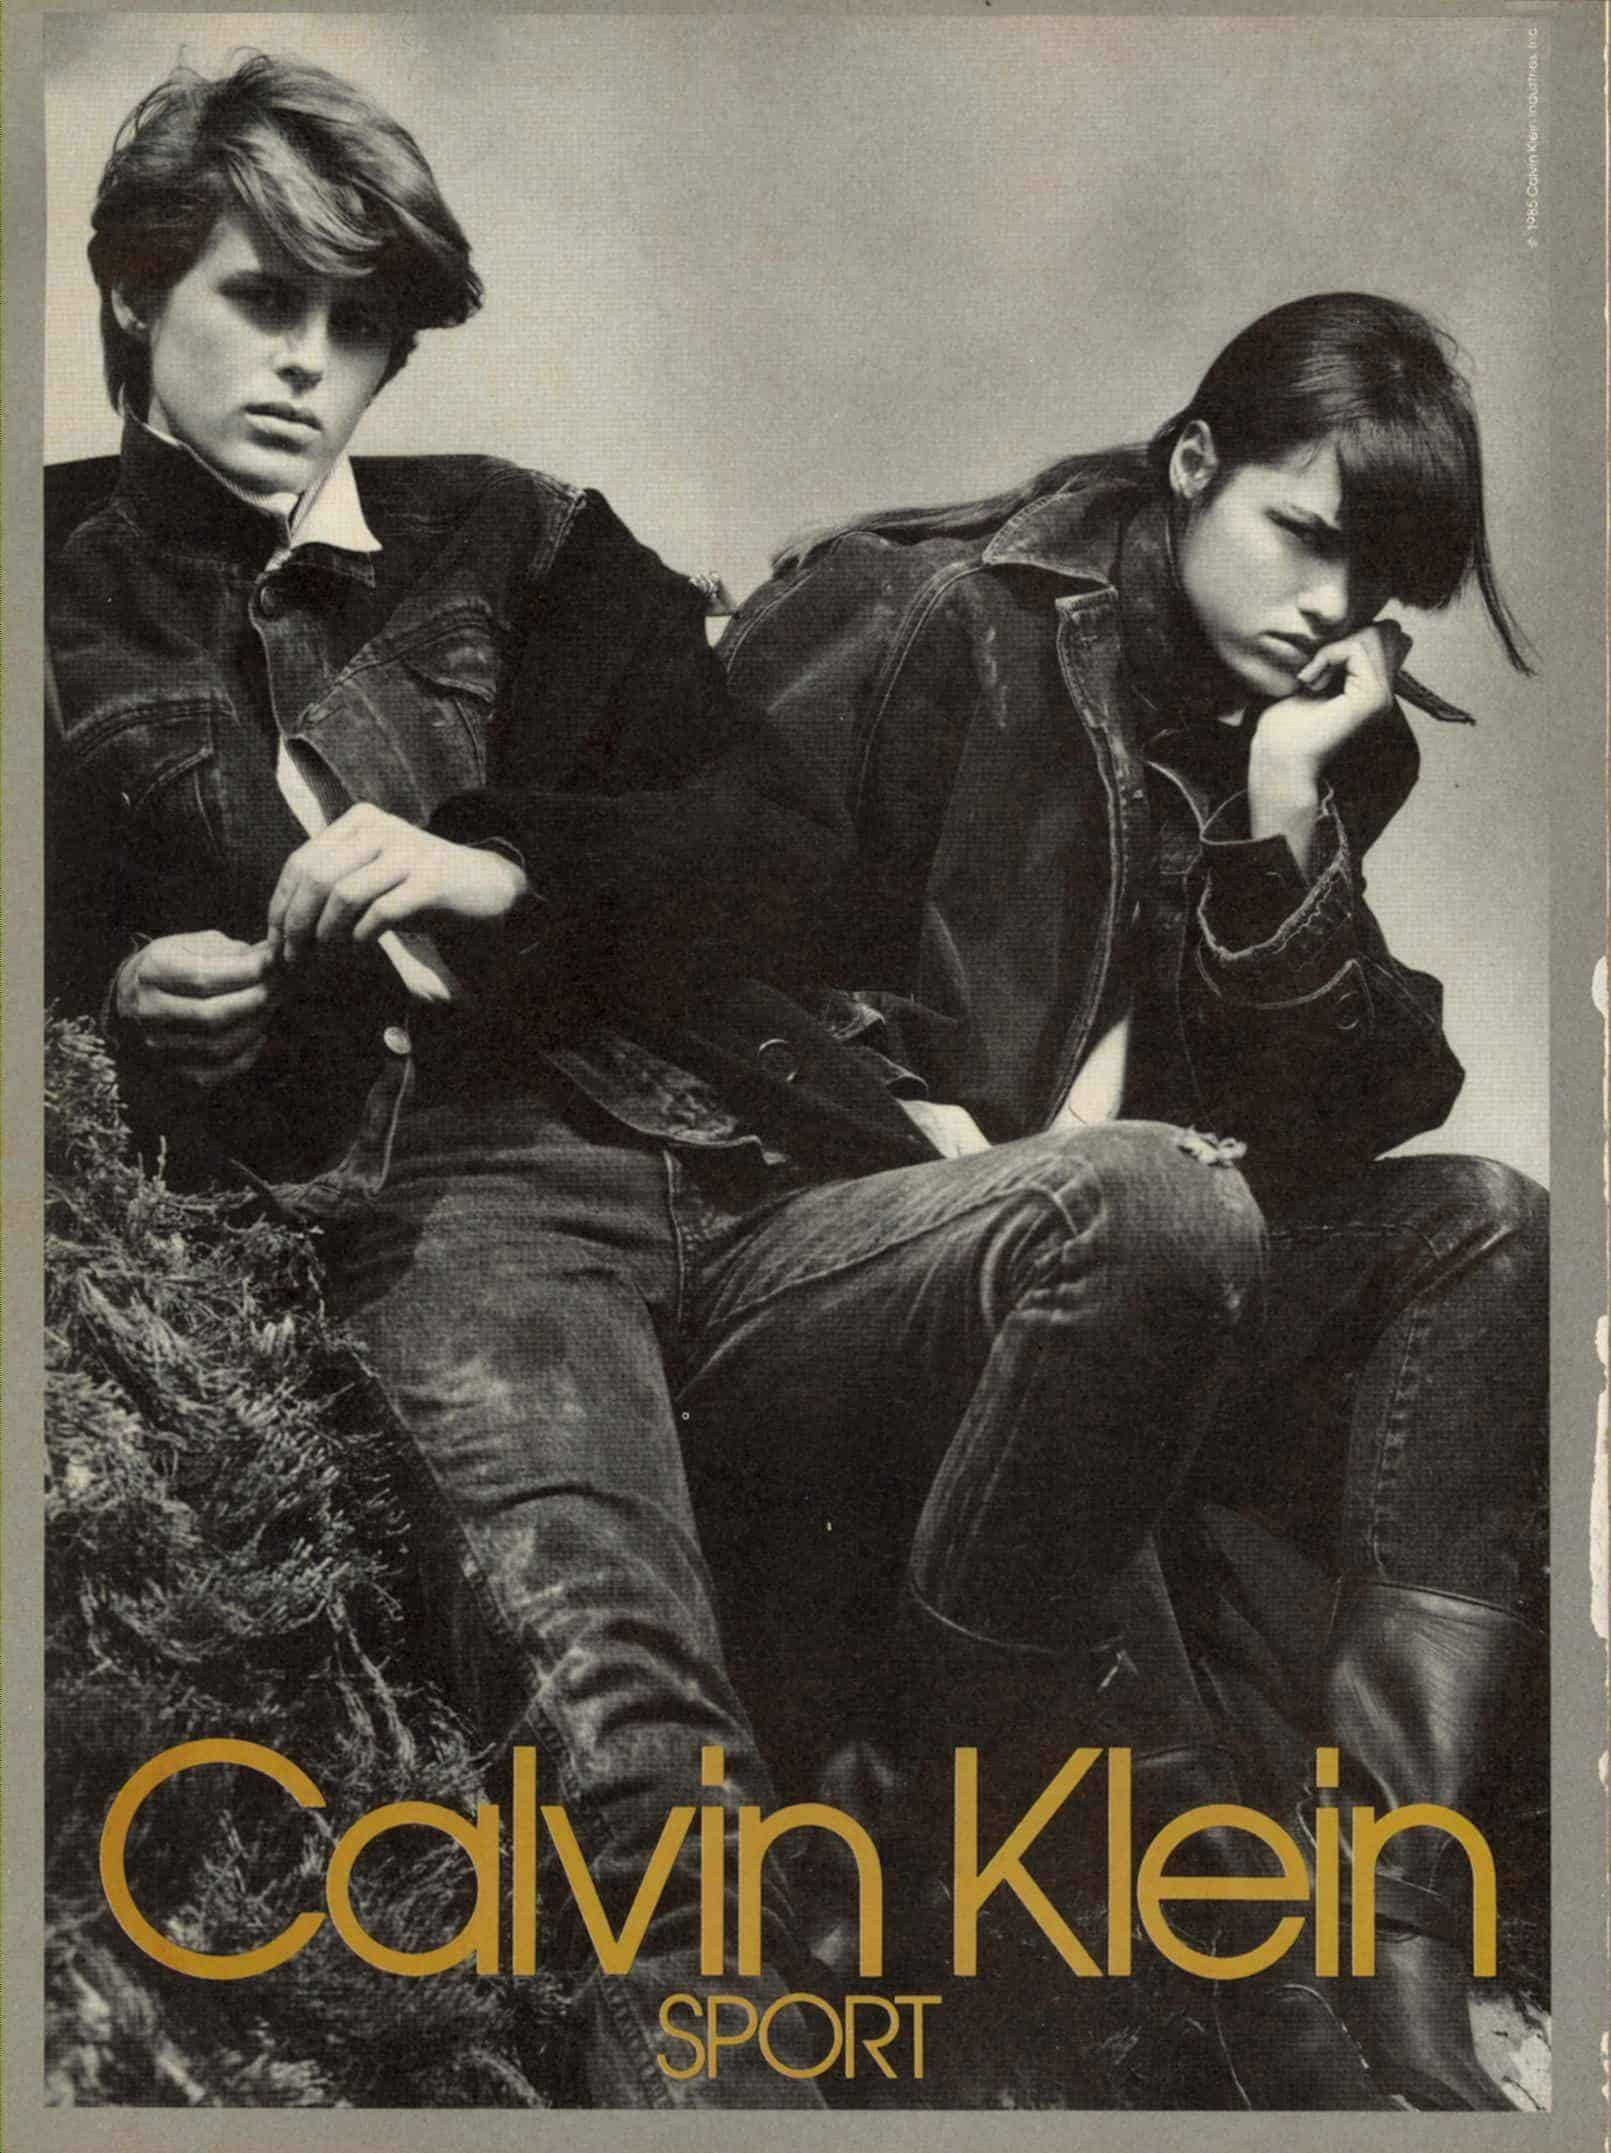 Calvin Klein's denim revolution